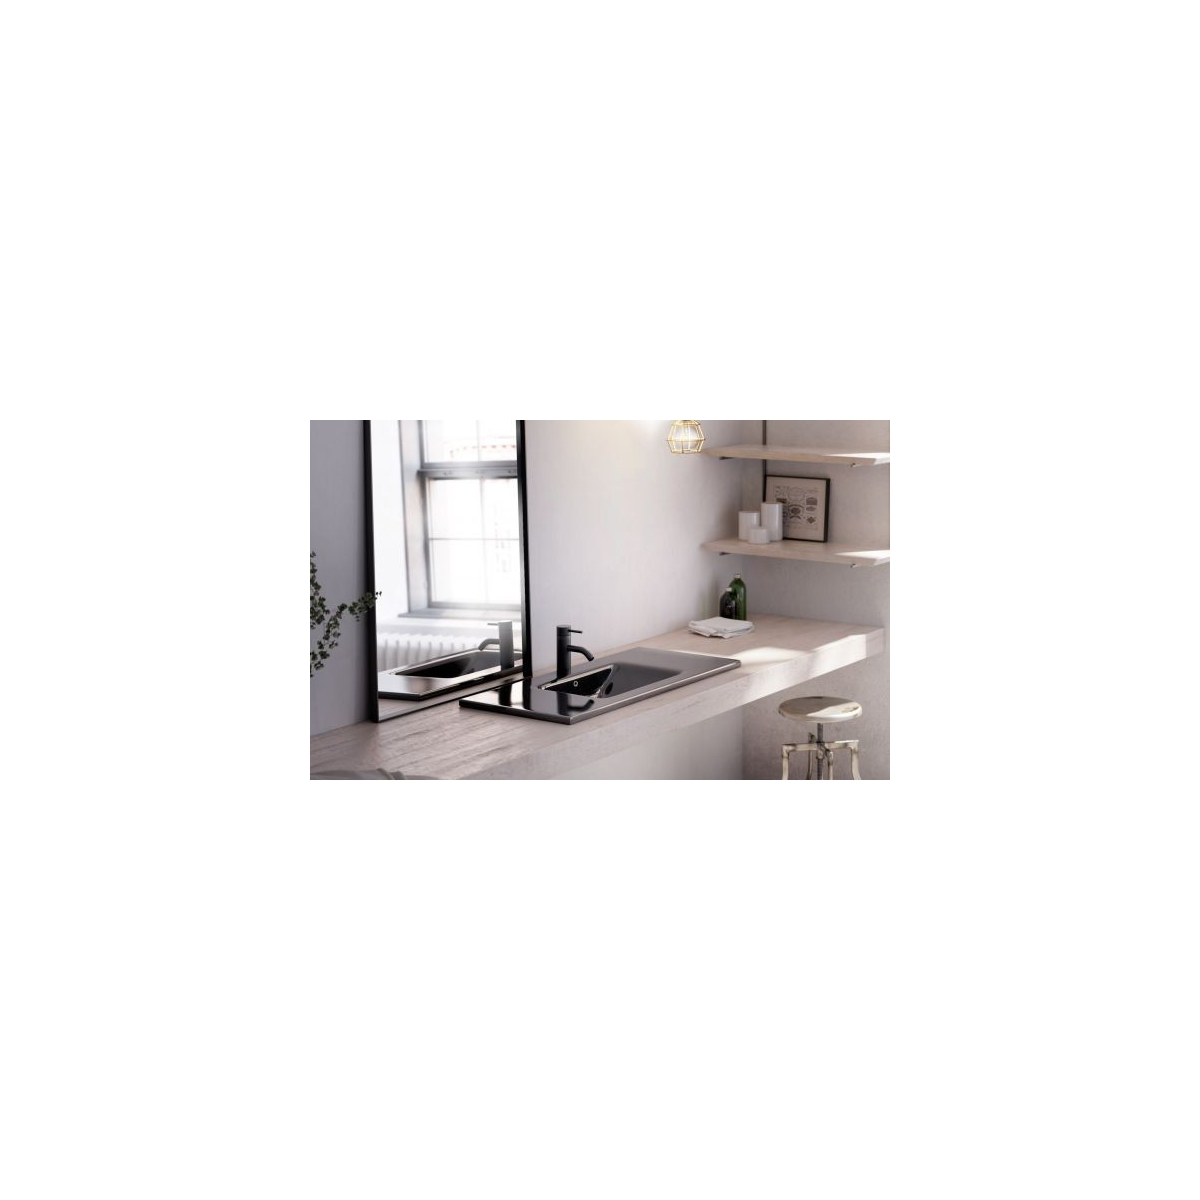 Lavabo Rectangular Montevideo D-Color Lavabos rectangulares The Bathco